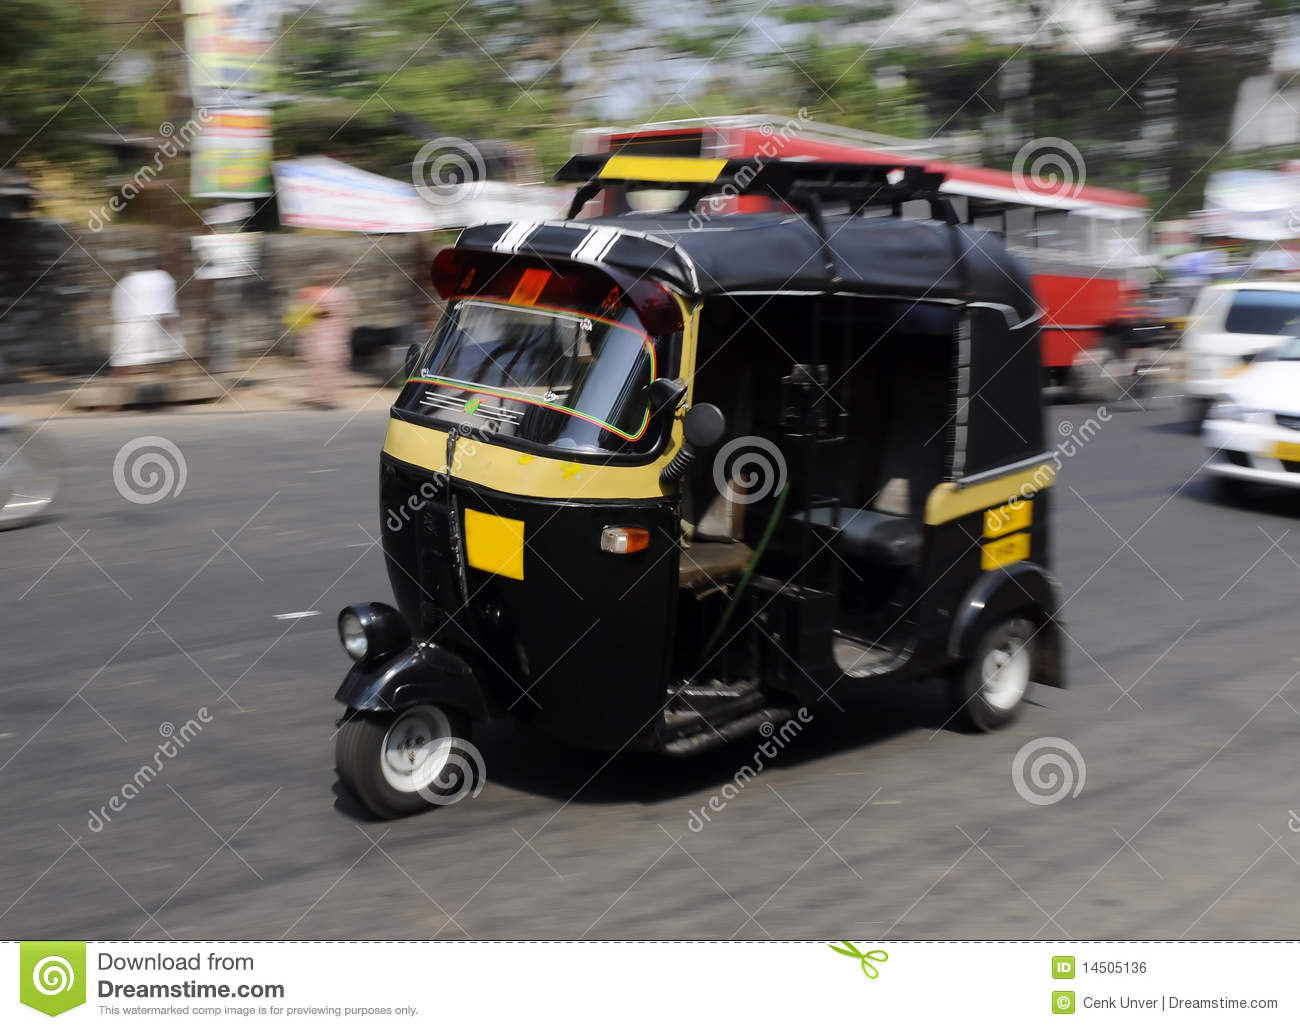 tuk tuk from india stock photo image of india street 14505136. Black Bedroom Furniture Sets. Home Design Ideas